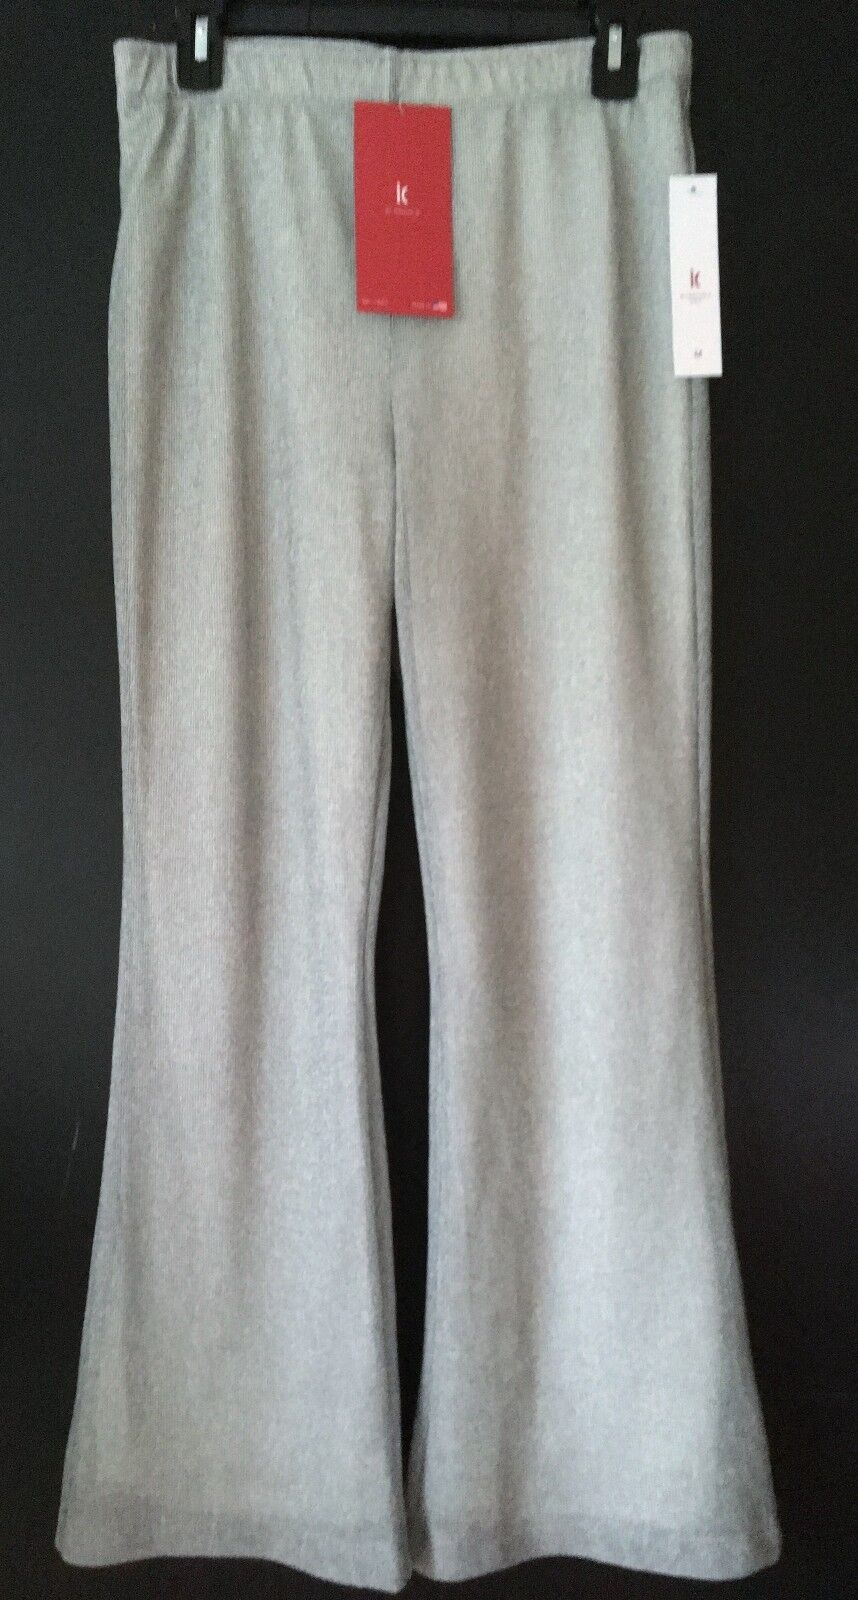 Nwt IC Collection by Connie K Grey Lined Gauzy Pull On Flare Ankle Pants M L XL